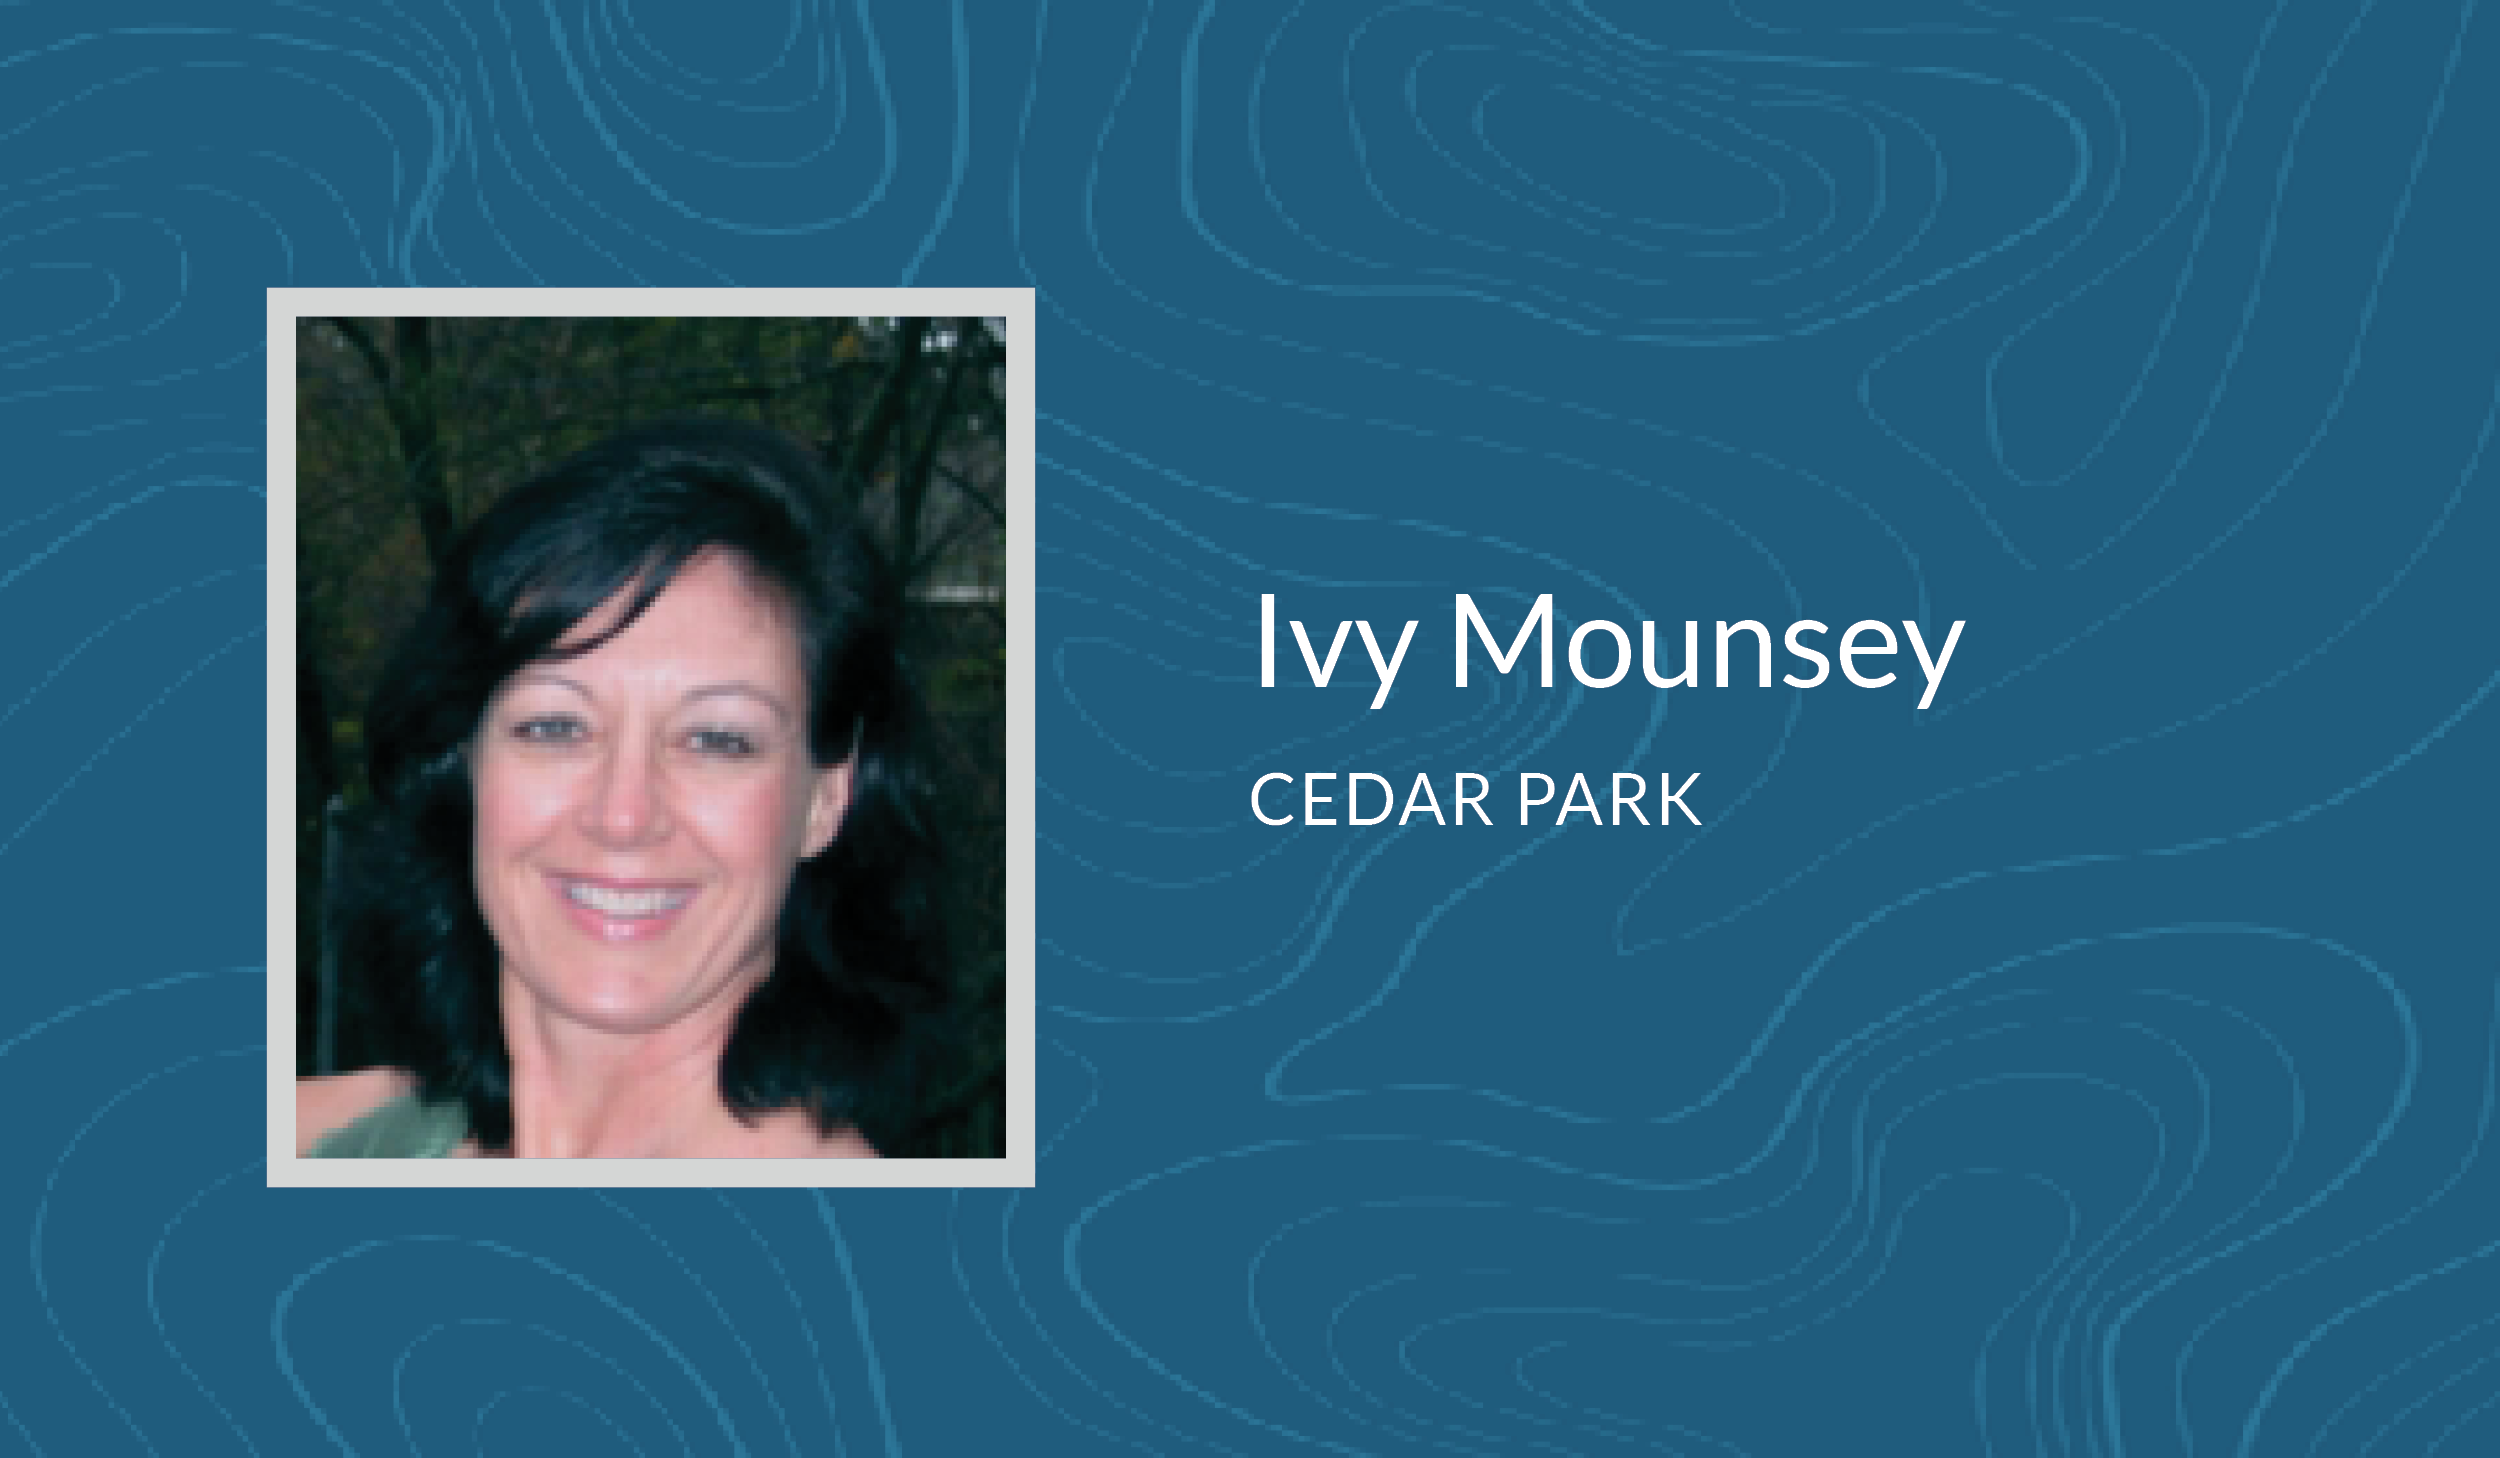 Ivy Mounsey Landing Page Headers.png